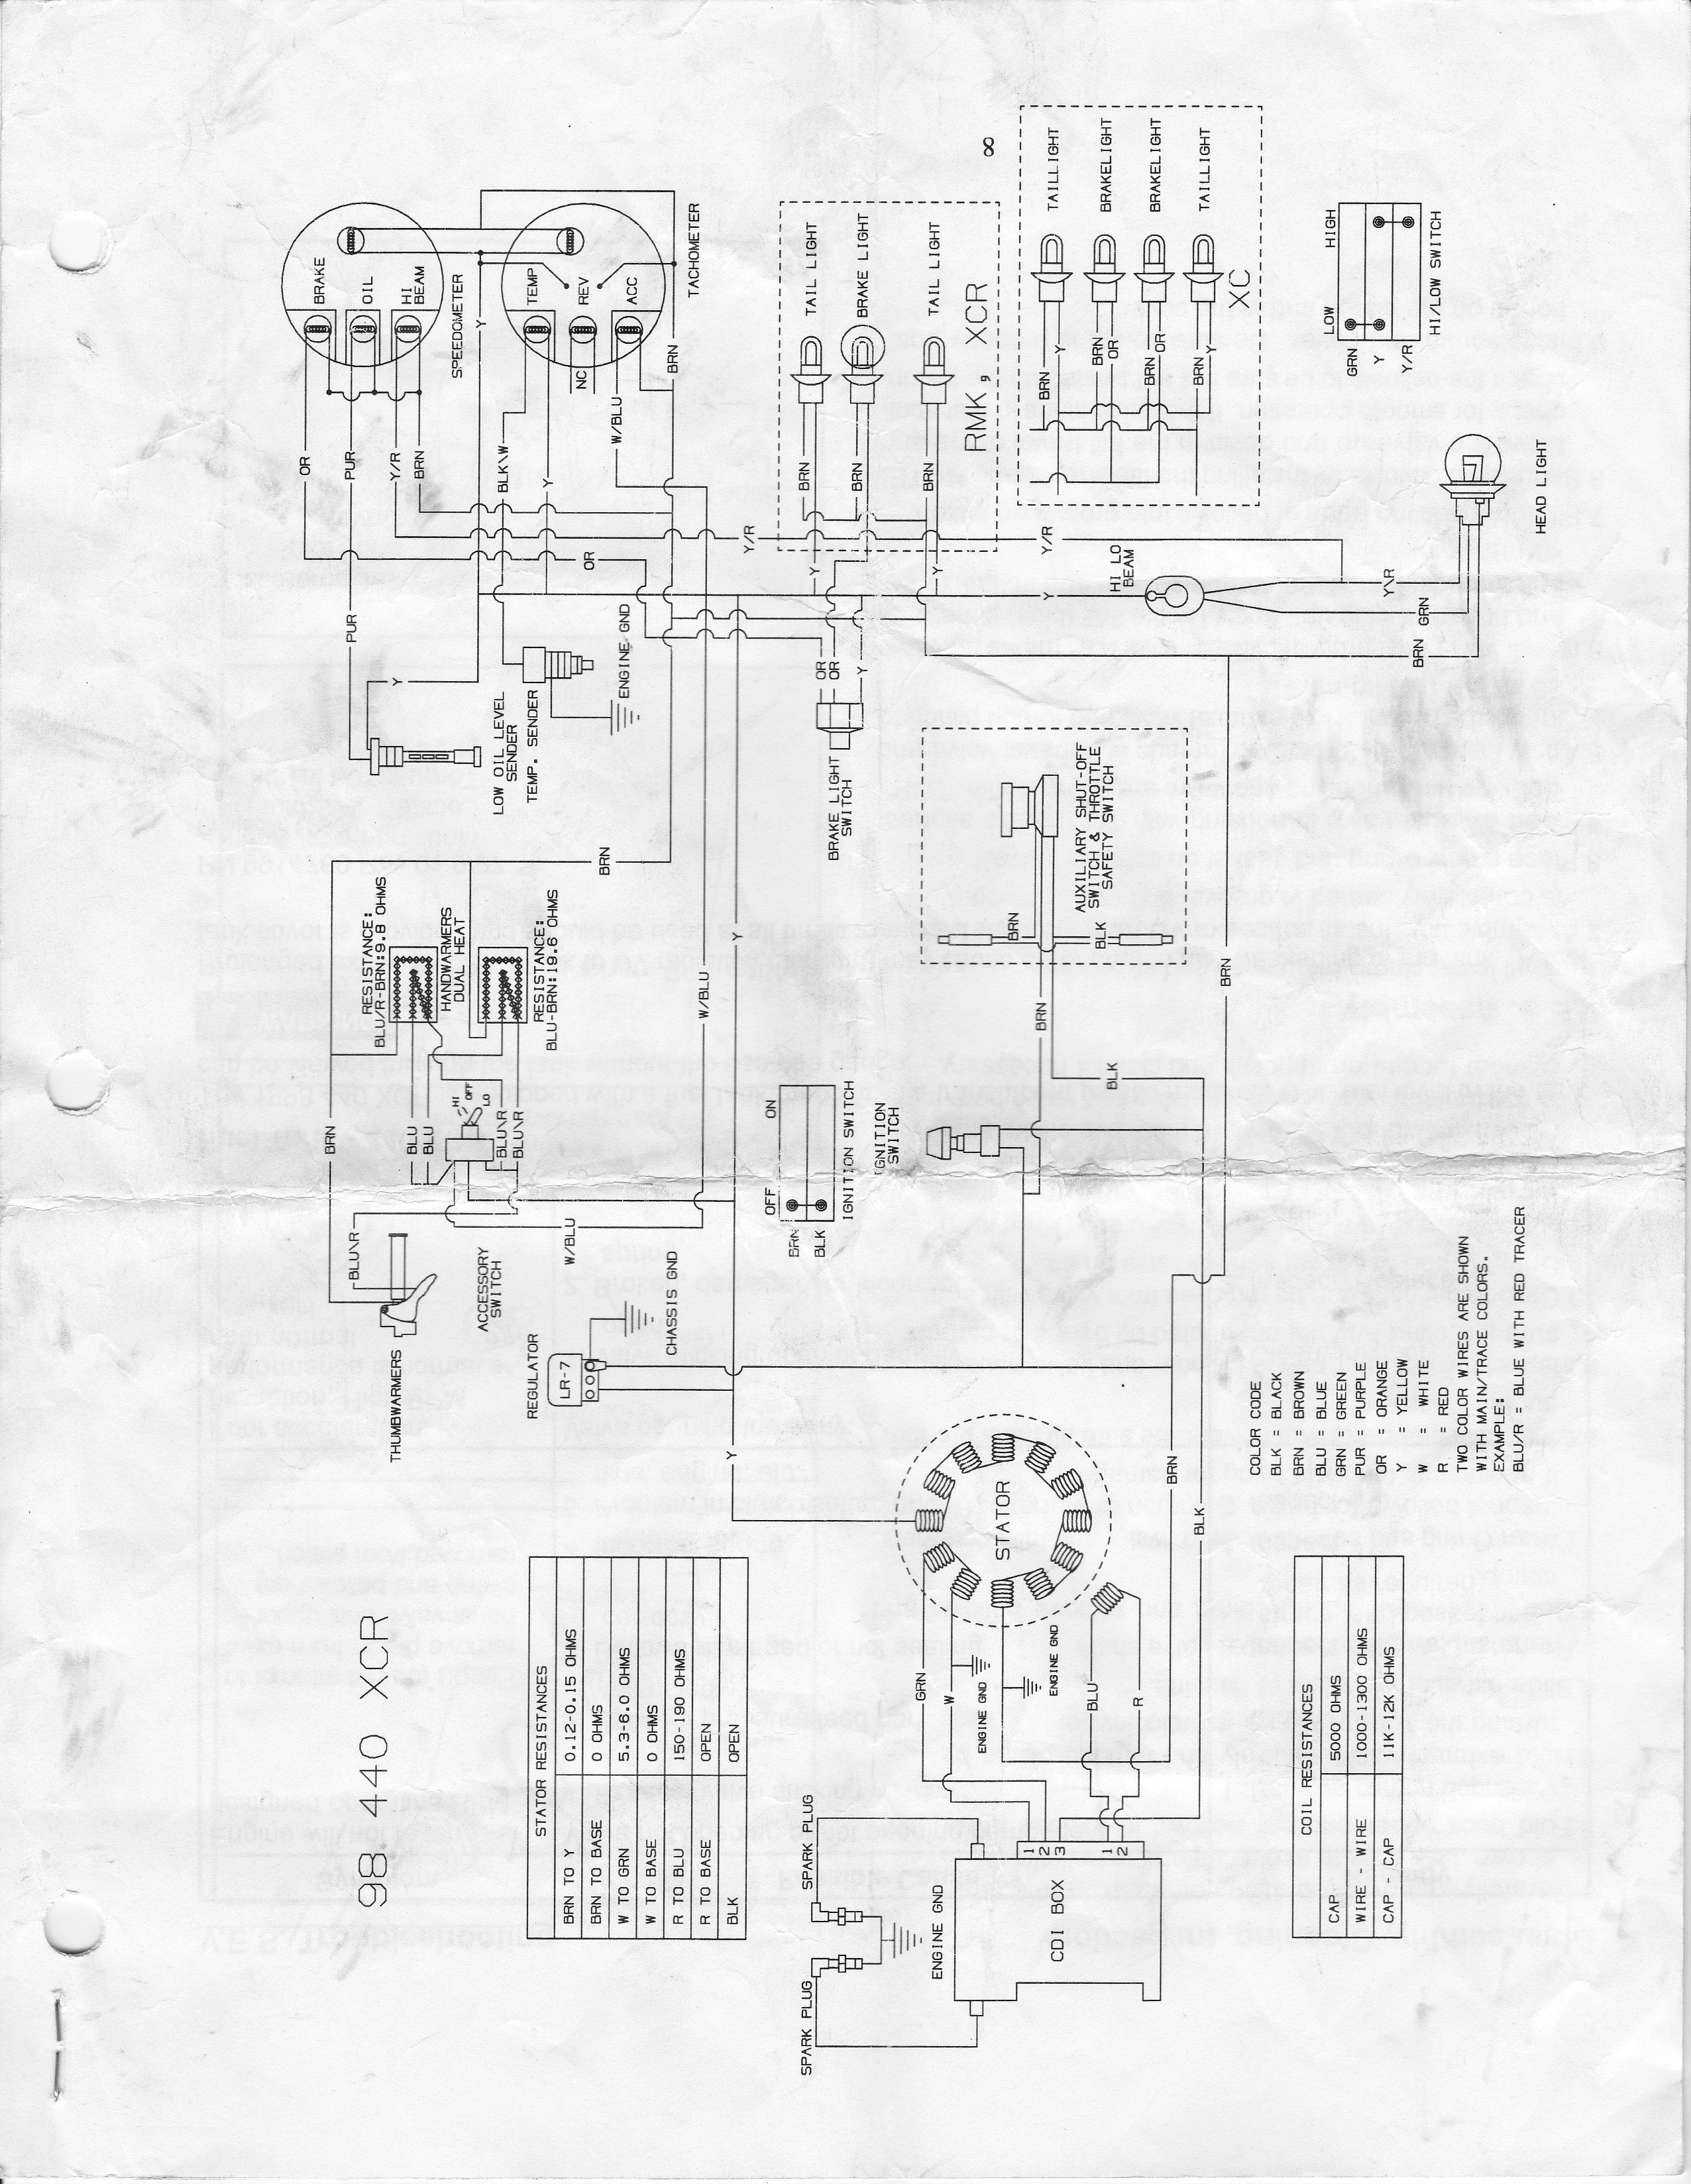 arctic cat wiring diagrams online polaris 250 4x4 wiring diagram e1 wiring diagram  polaris 250 4x4 wiring diagram e1